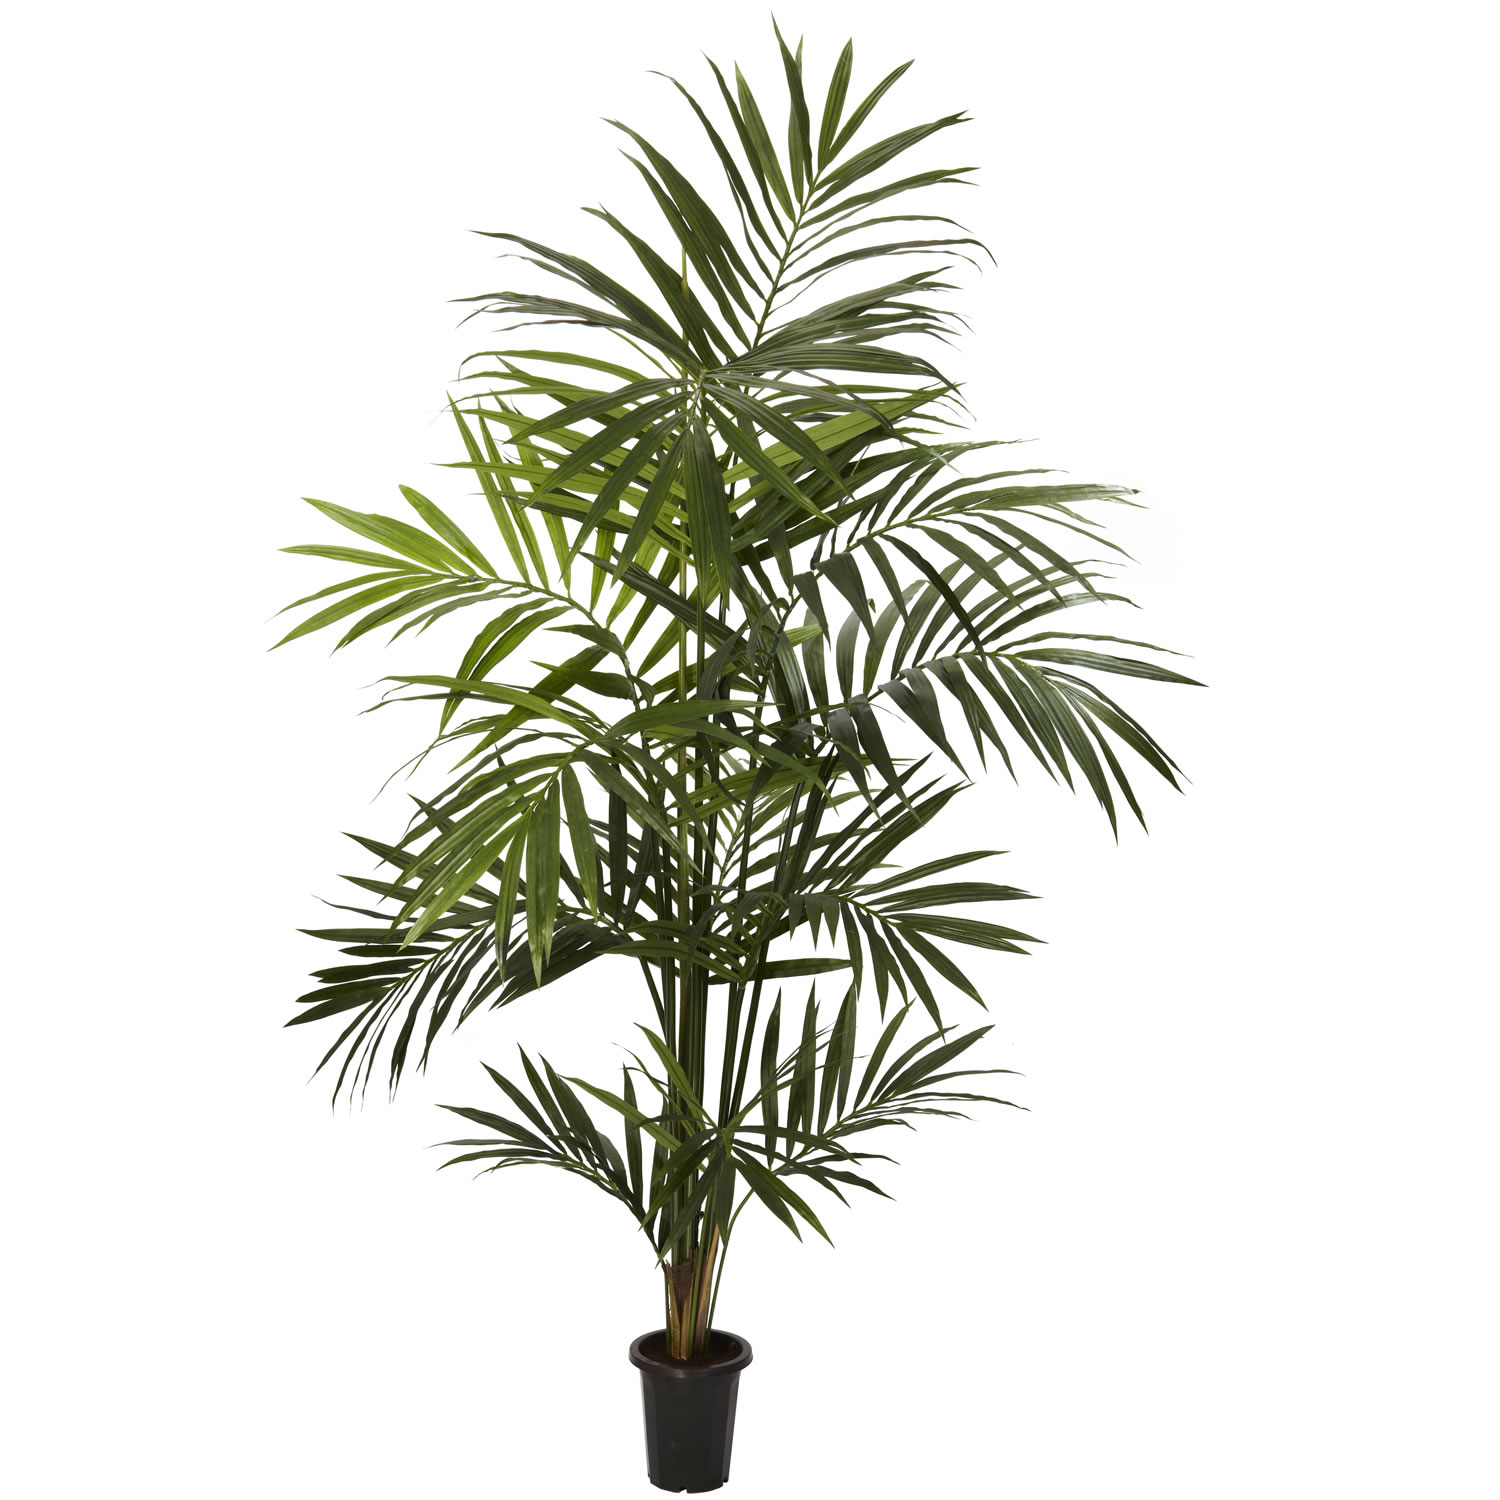 Preserved cypress bonsai 7 h contemporary phoenix by botanical - 7 Foot Kentia Palm Tree Potted